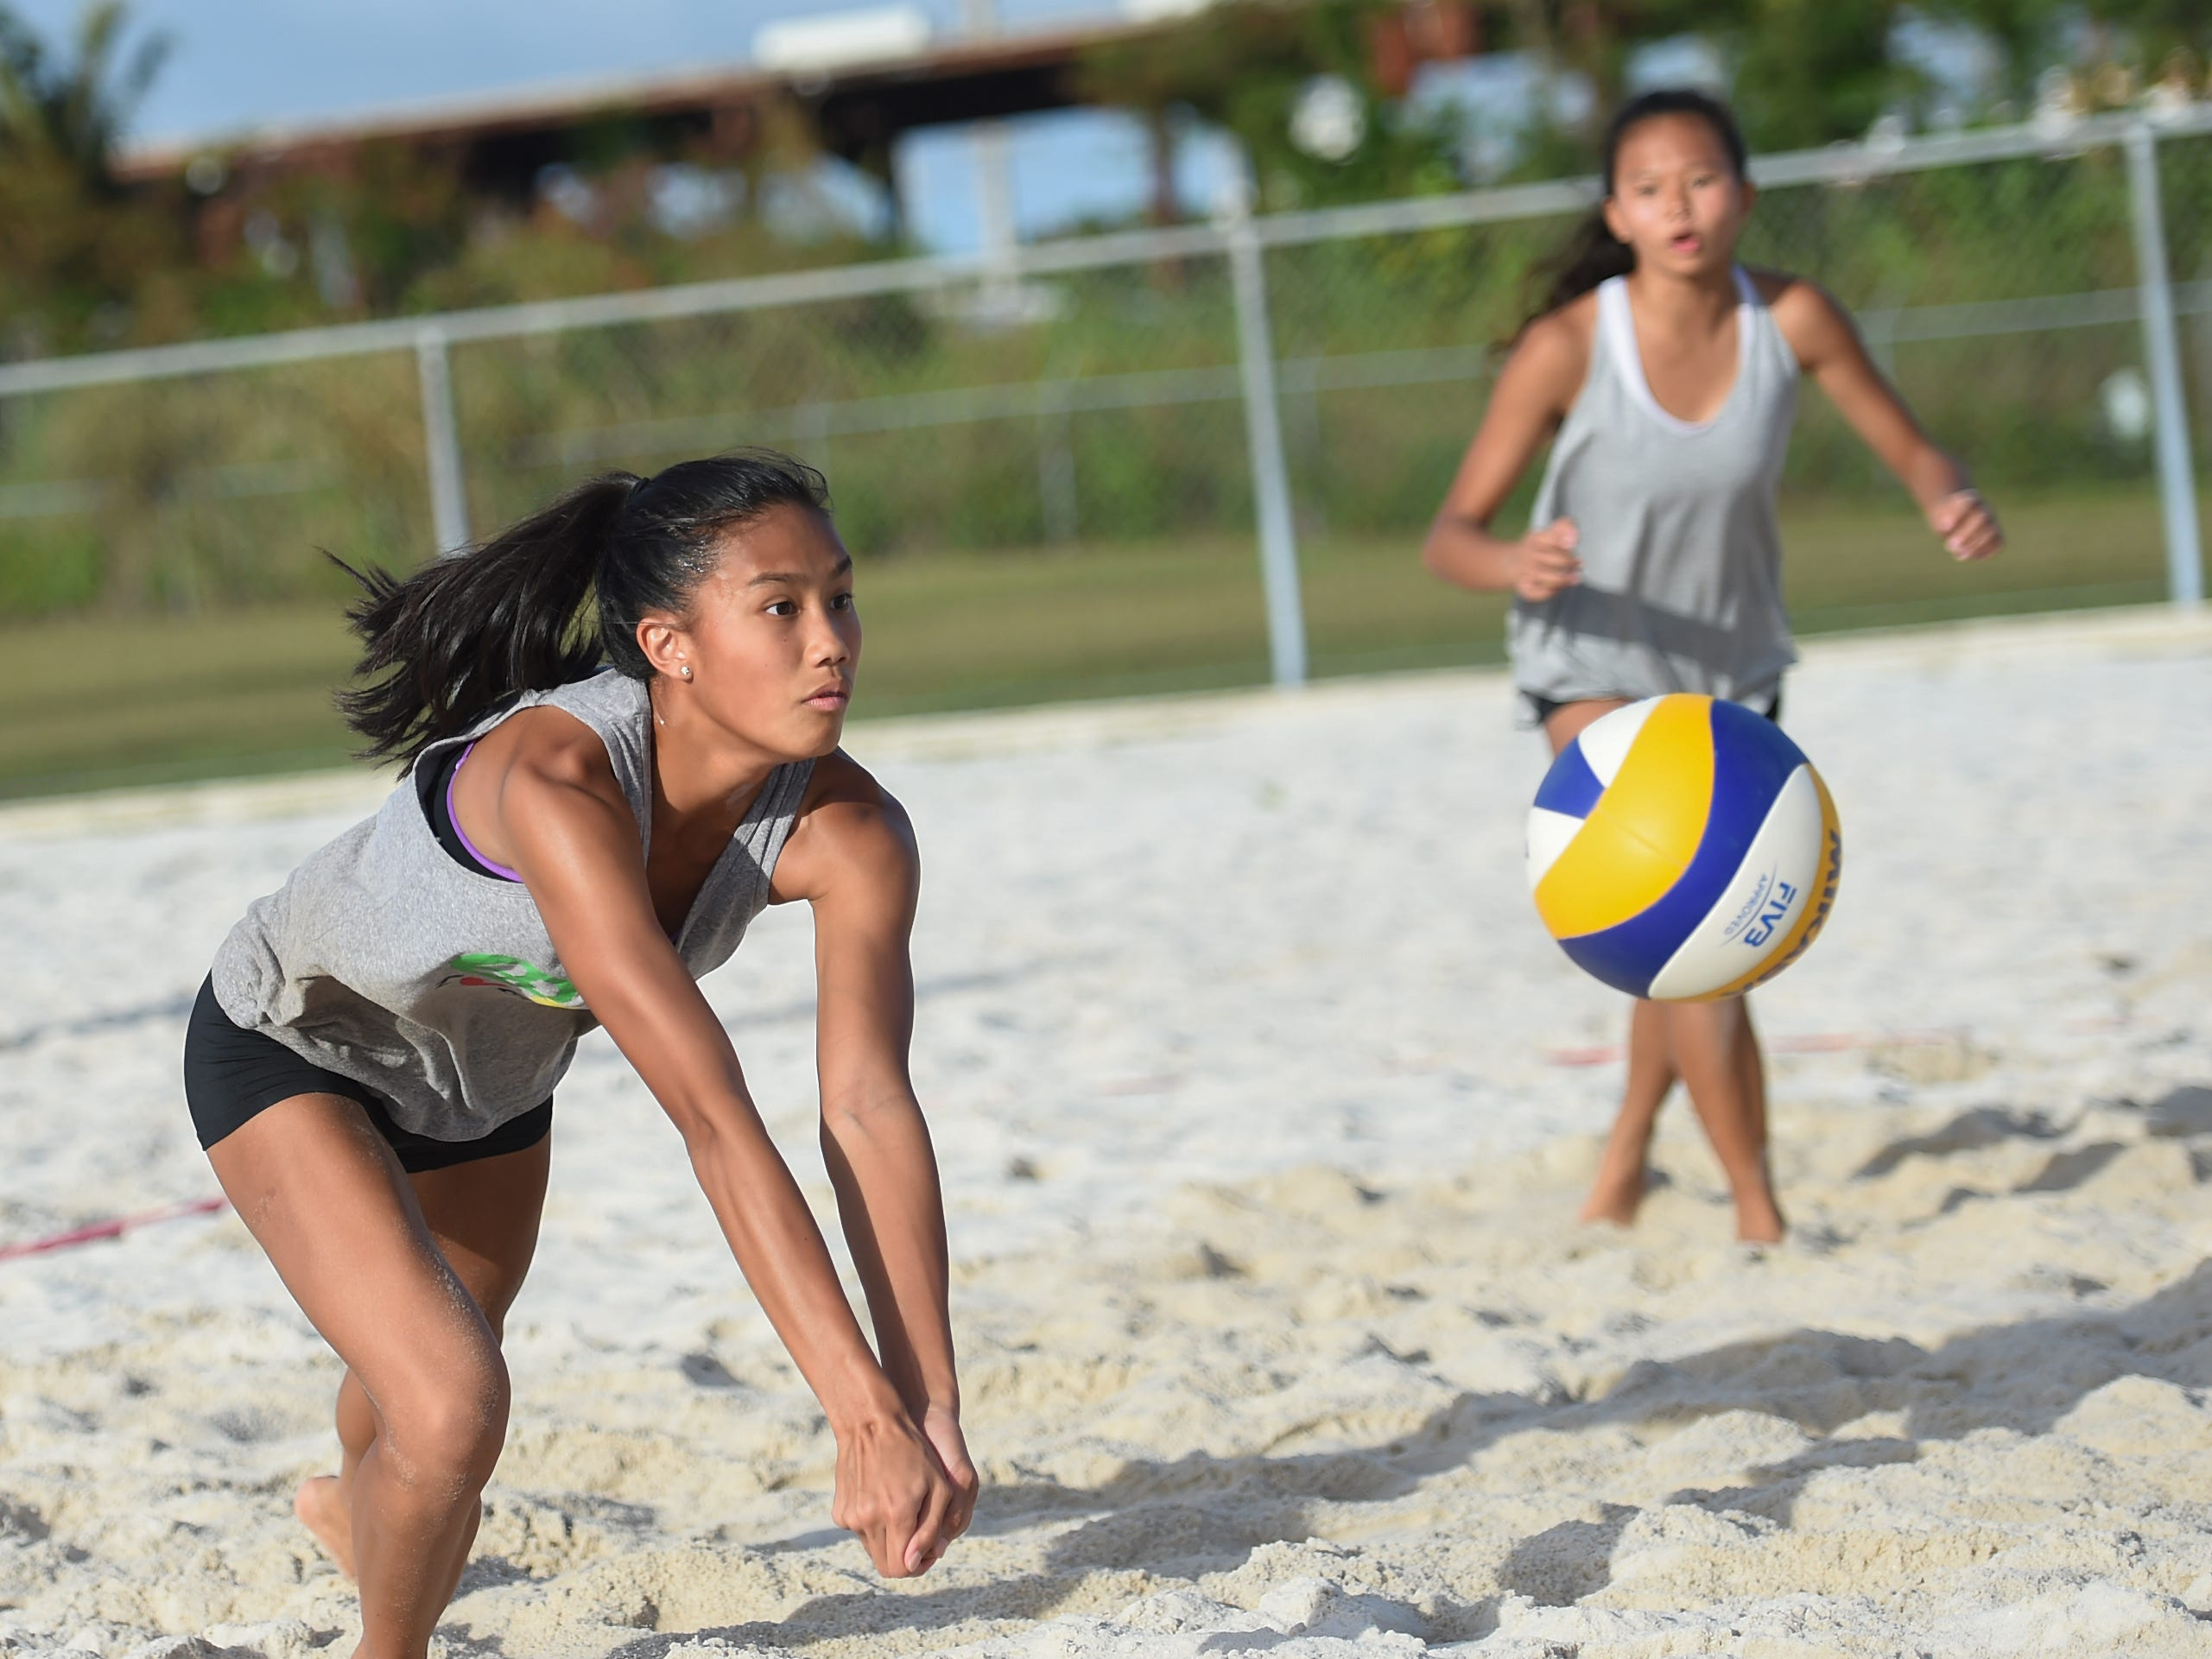 St. John's player Kristen Serrano competes during the IIAAG Beach Volleyball championship game at the Guam Football Association National Training Center in Dededo, March 12, 2019.